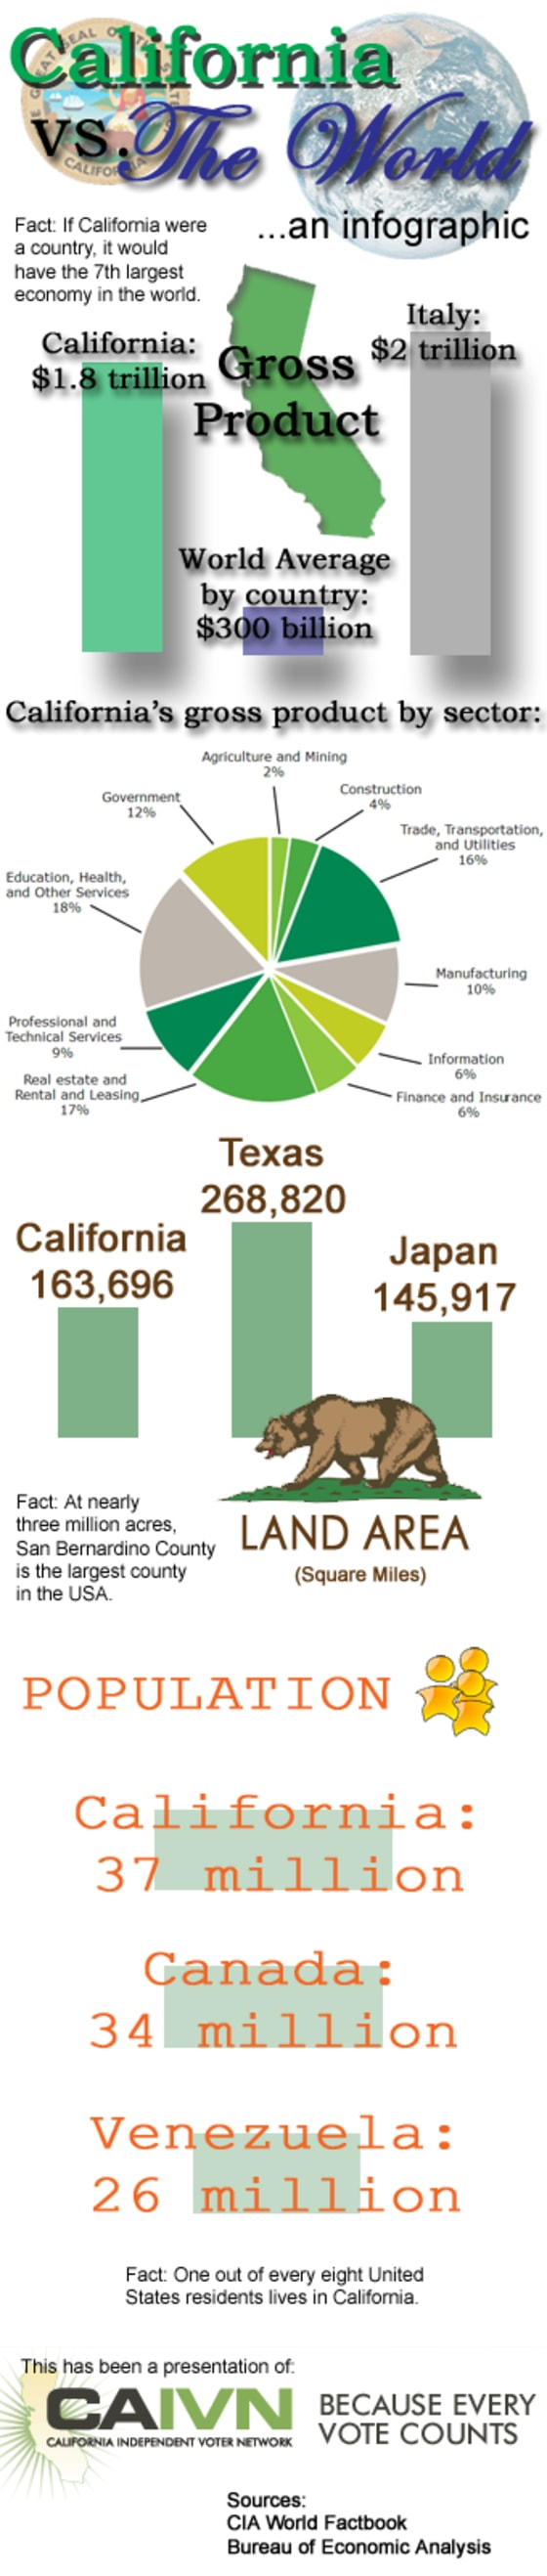 California Infographic